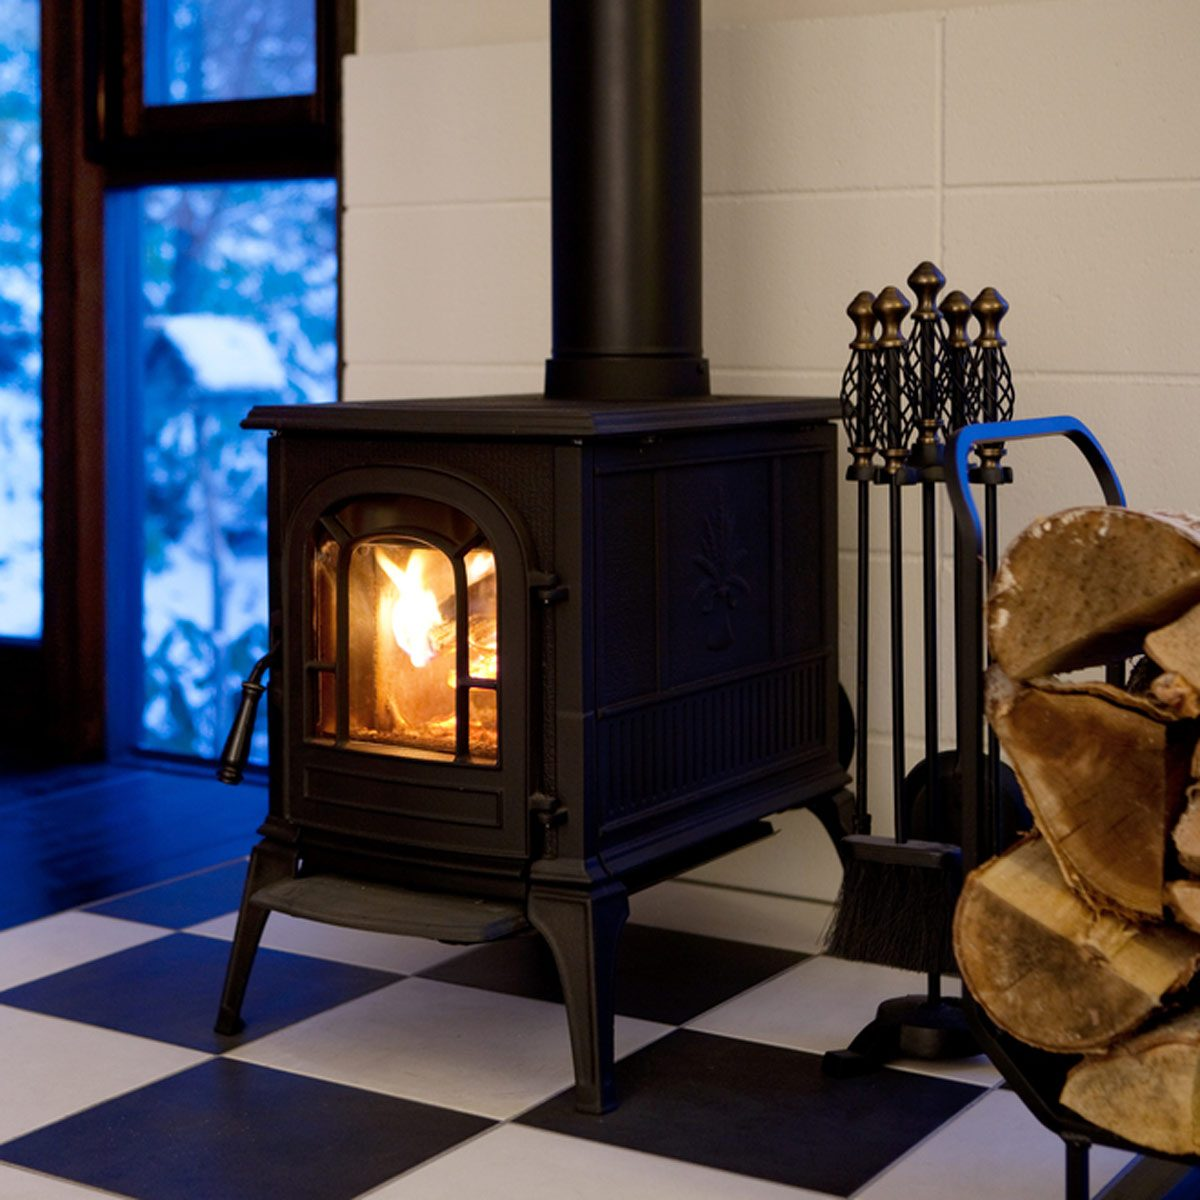 Set Up a Wood Stove by the Window